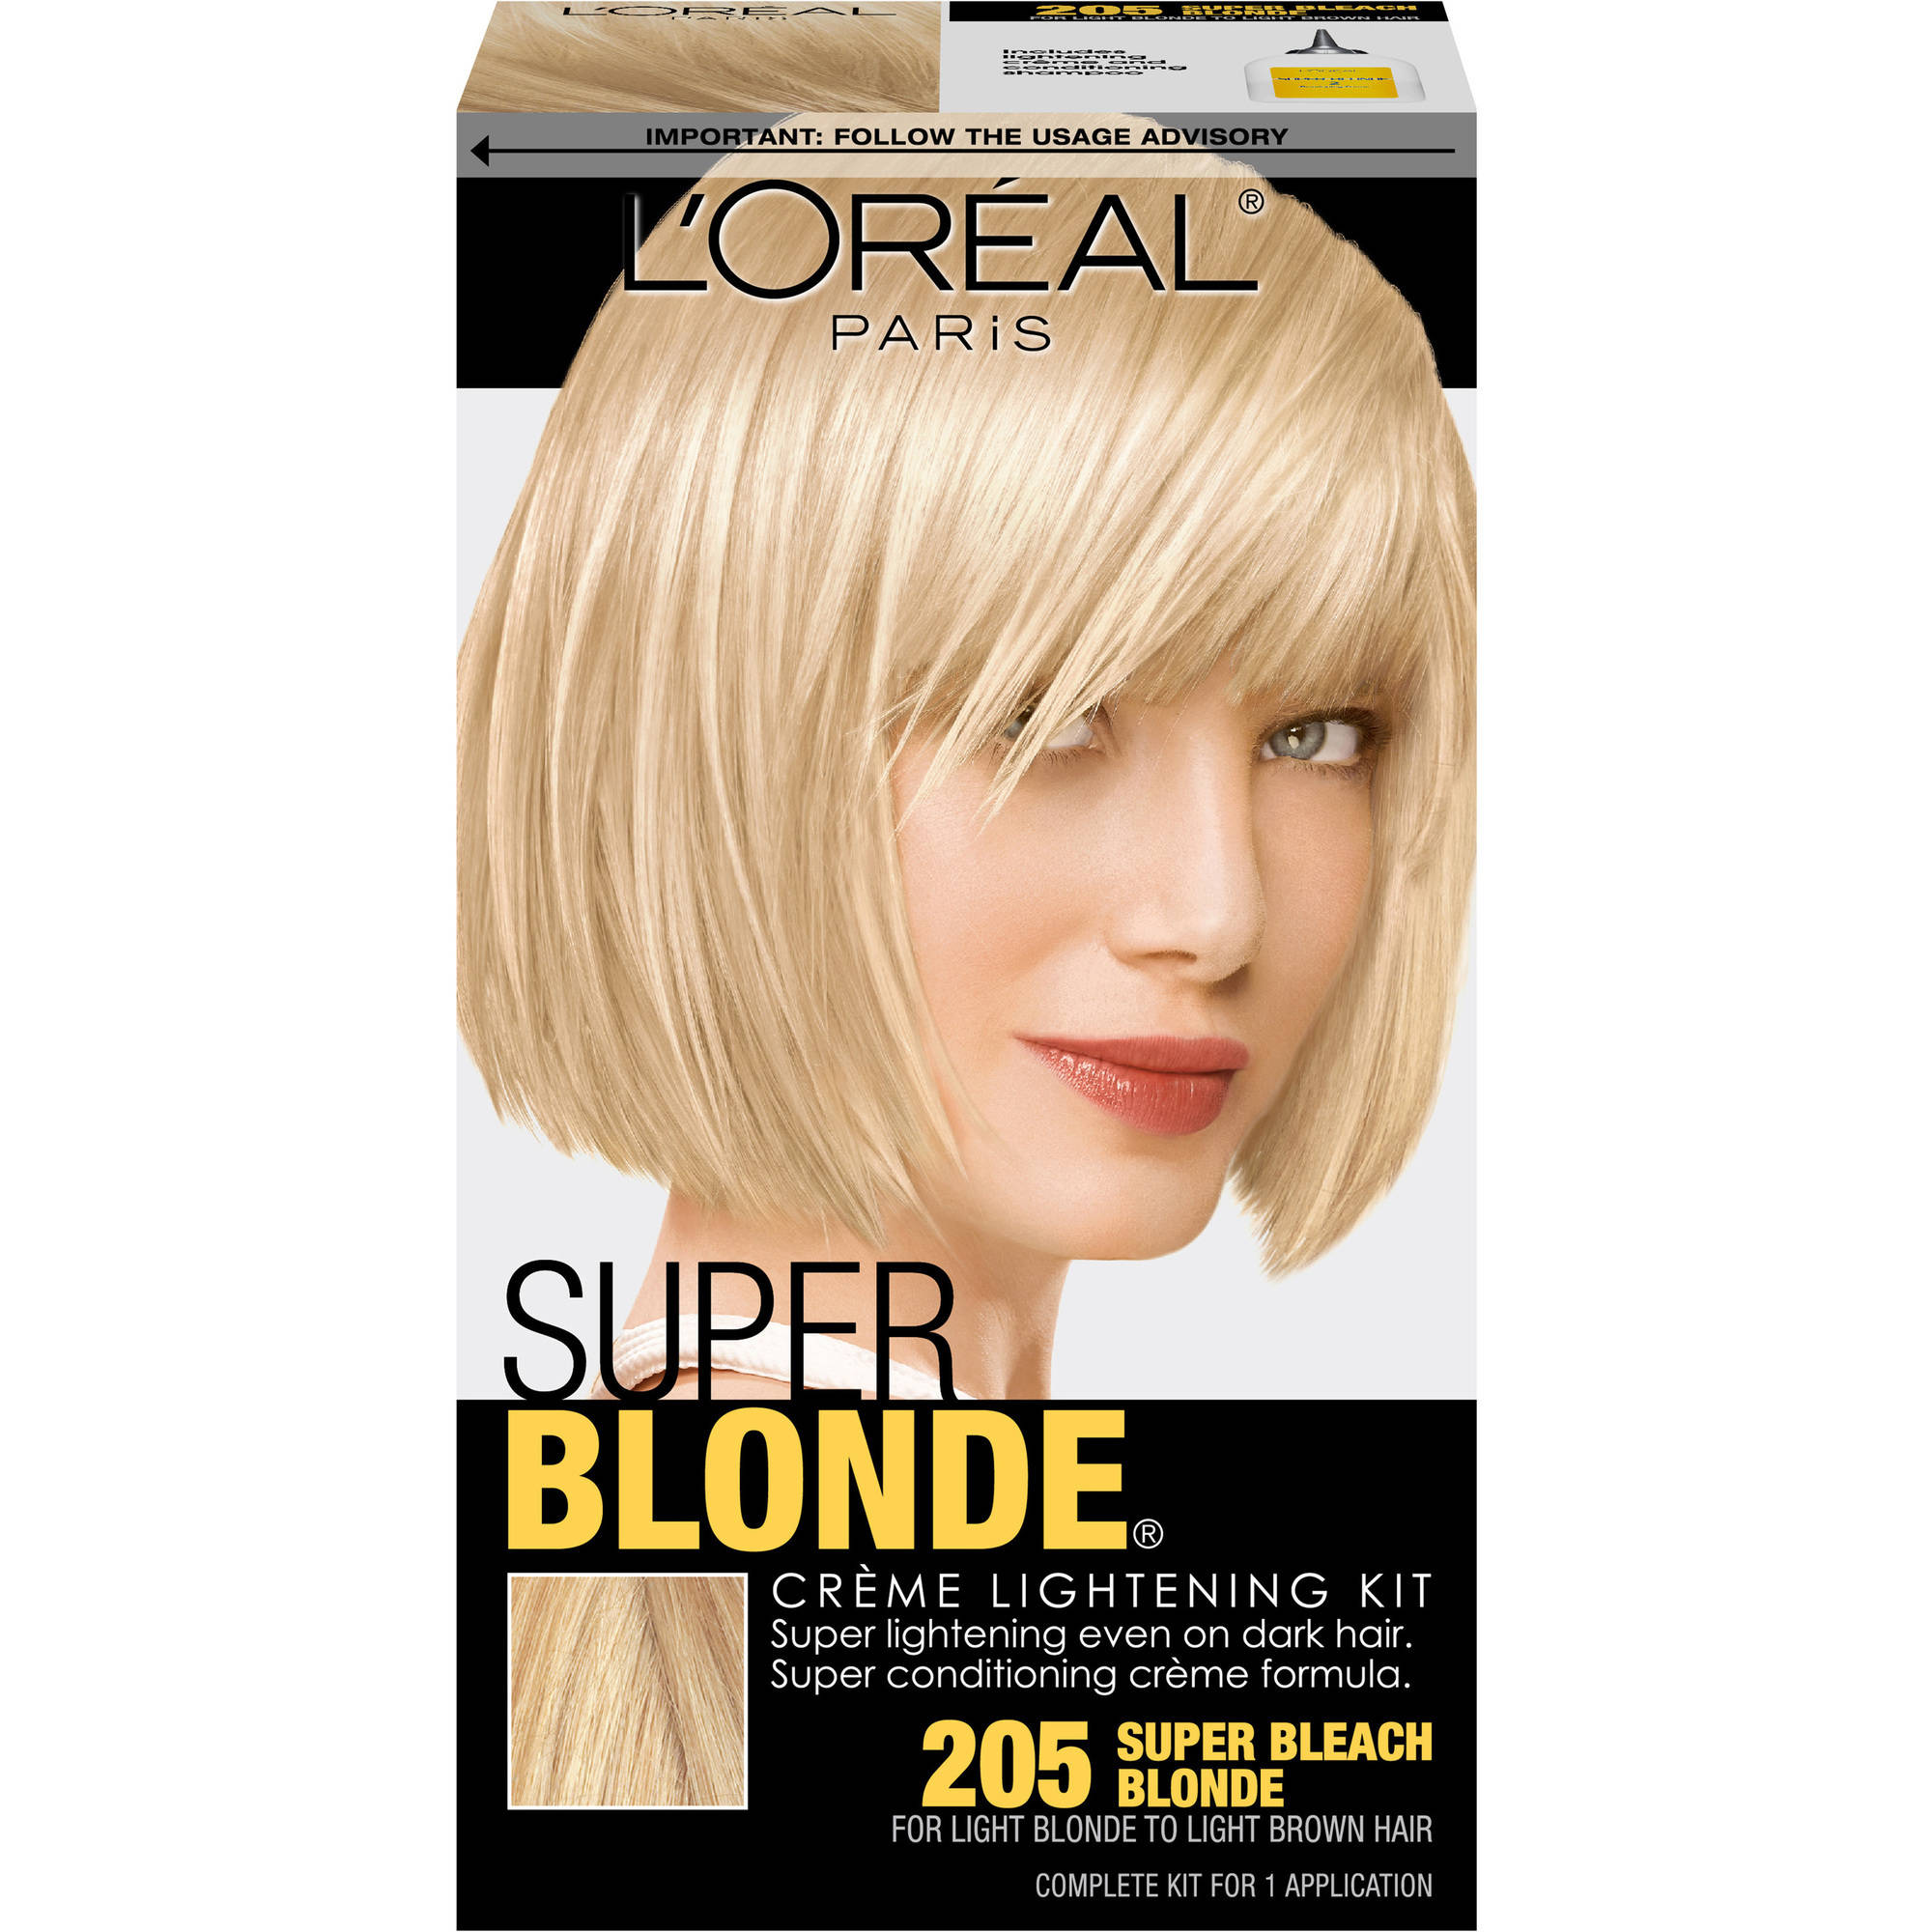 L'Oreal Paris Super Blonde Creme Lightening Kit, Super Bleach Blonde 205